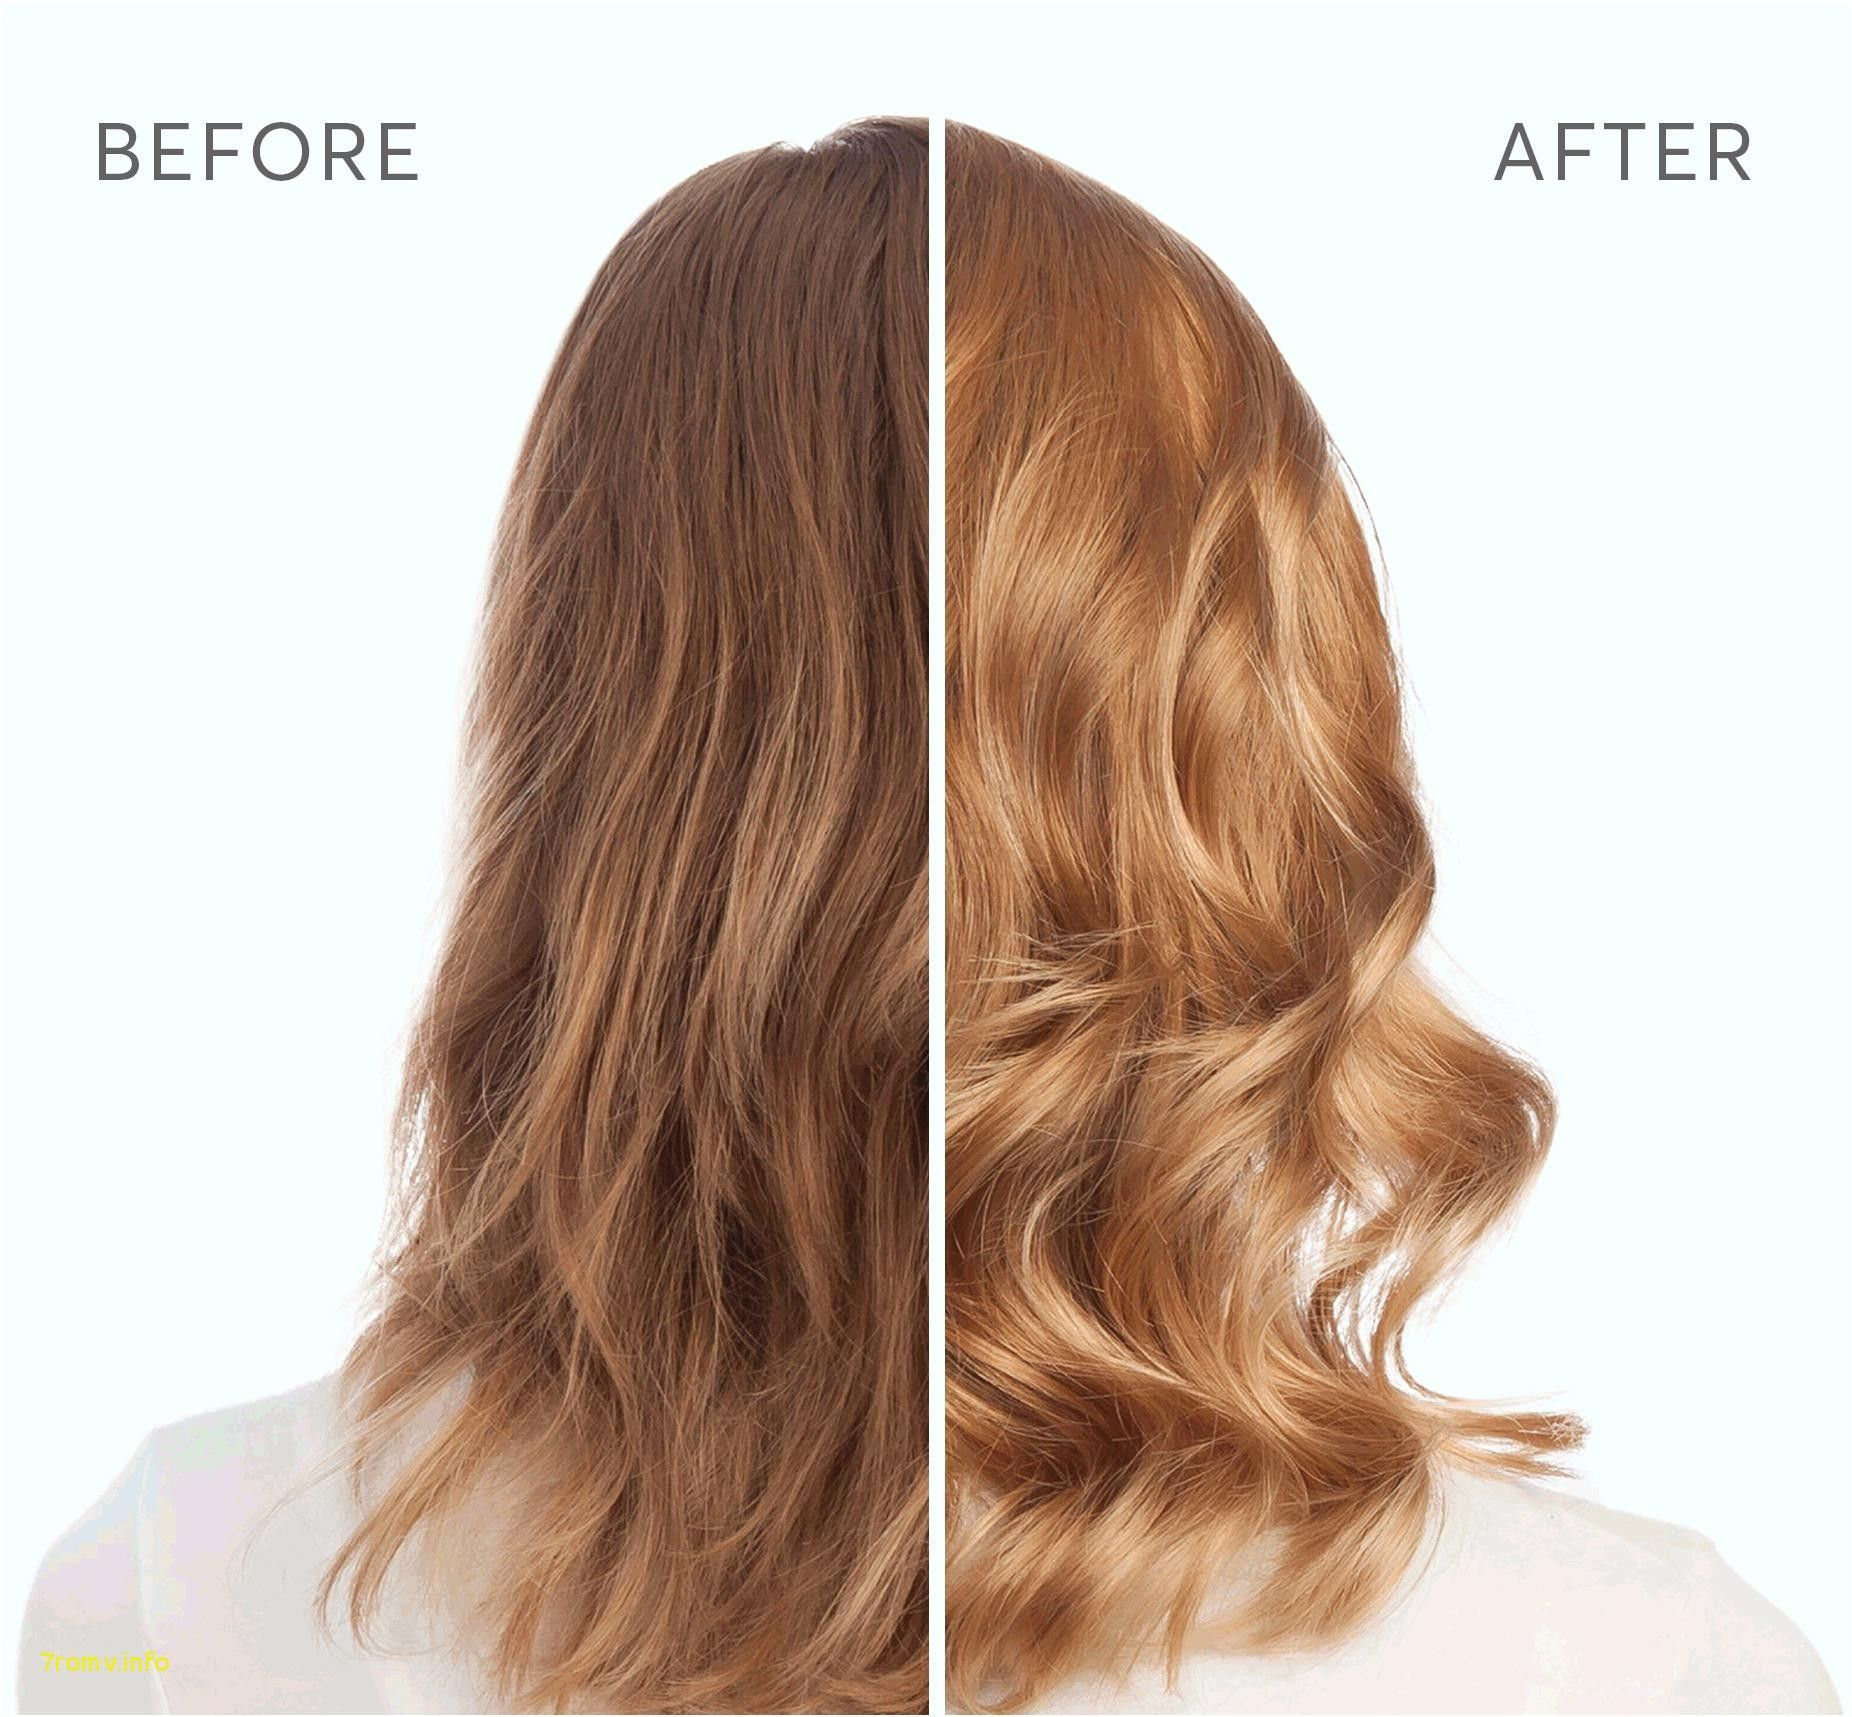 Spiral Perms Before And After Luxury How To Fix A Bad Perm Franziska Kluge Boughner Spiral Perms Before And In 2020 Permed Hairstyles Really Long Hair Hair Styles